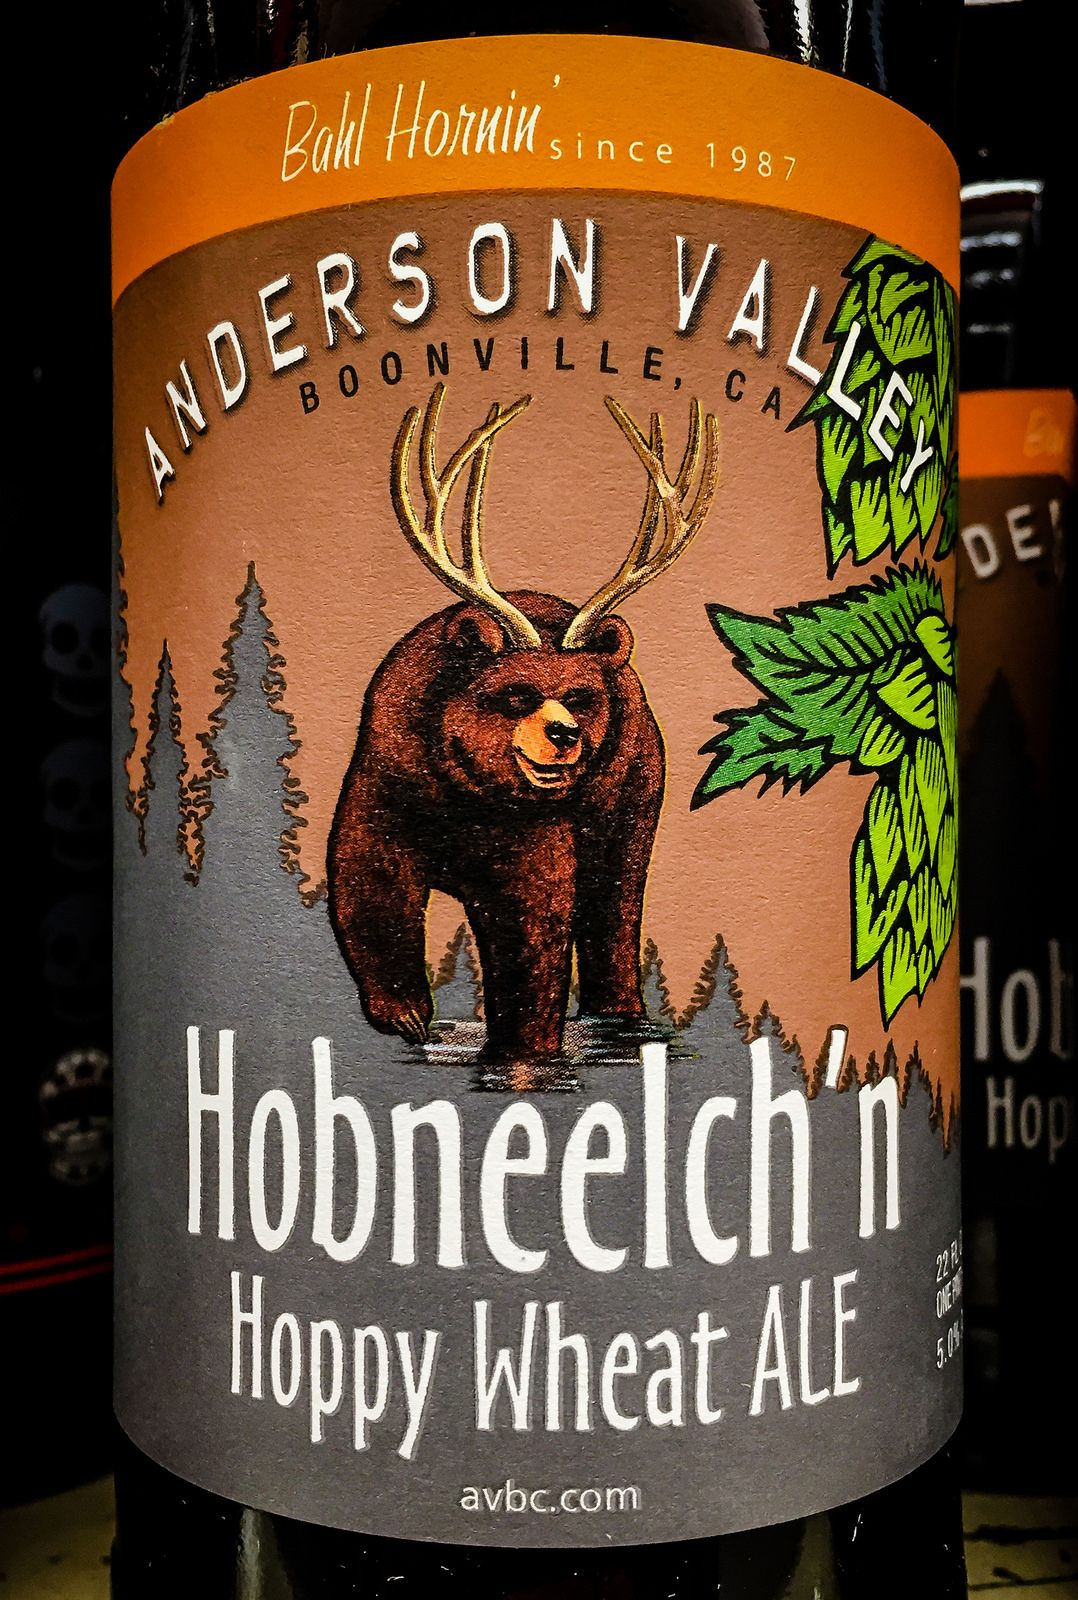 Anderson Valley Hobneelch'n Hoppy Wheat Ale - Booneville California